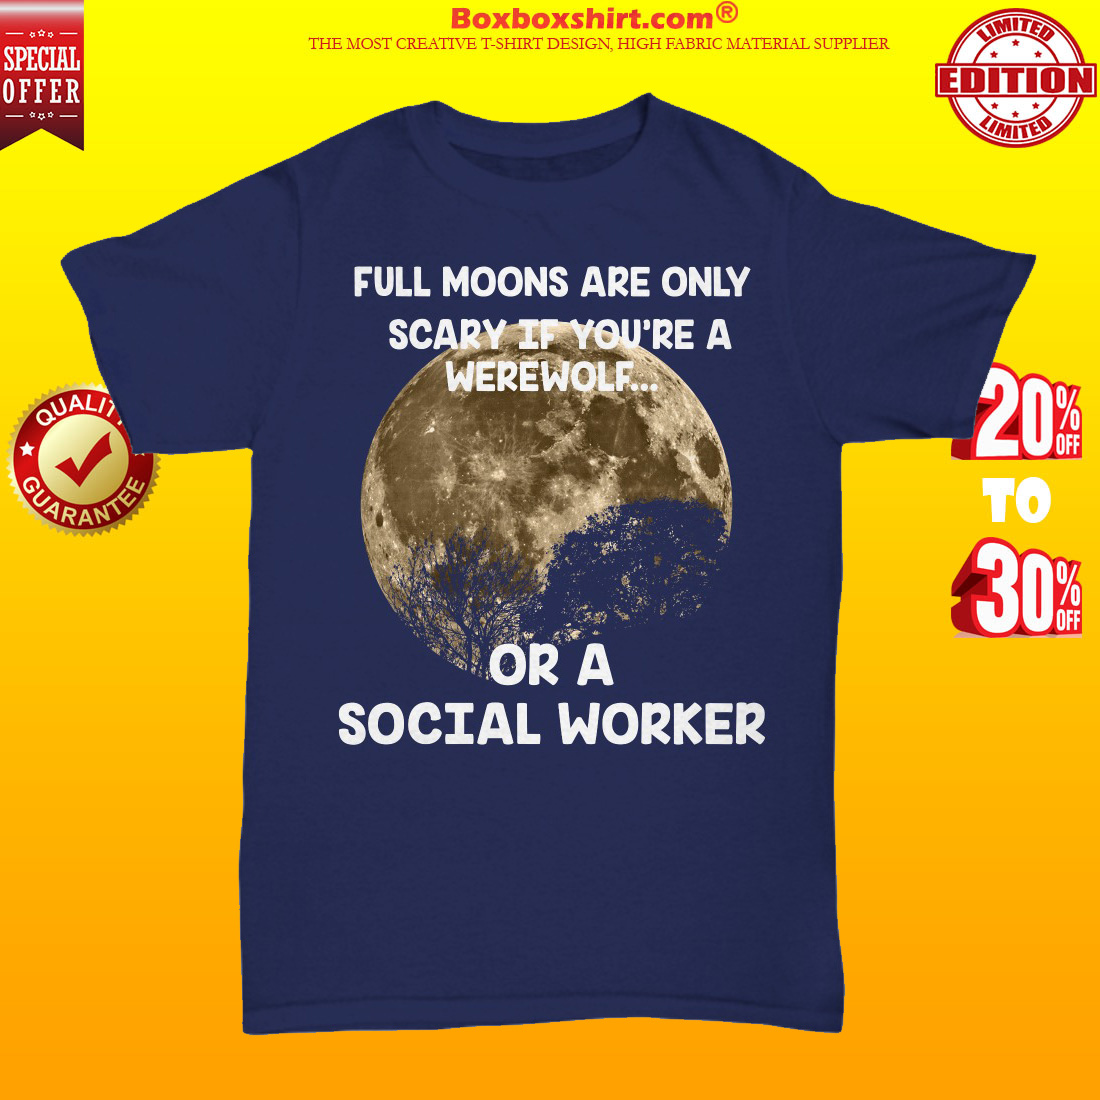 Full moons are only scary if you are a werework or a social worker unisex tee shirt